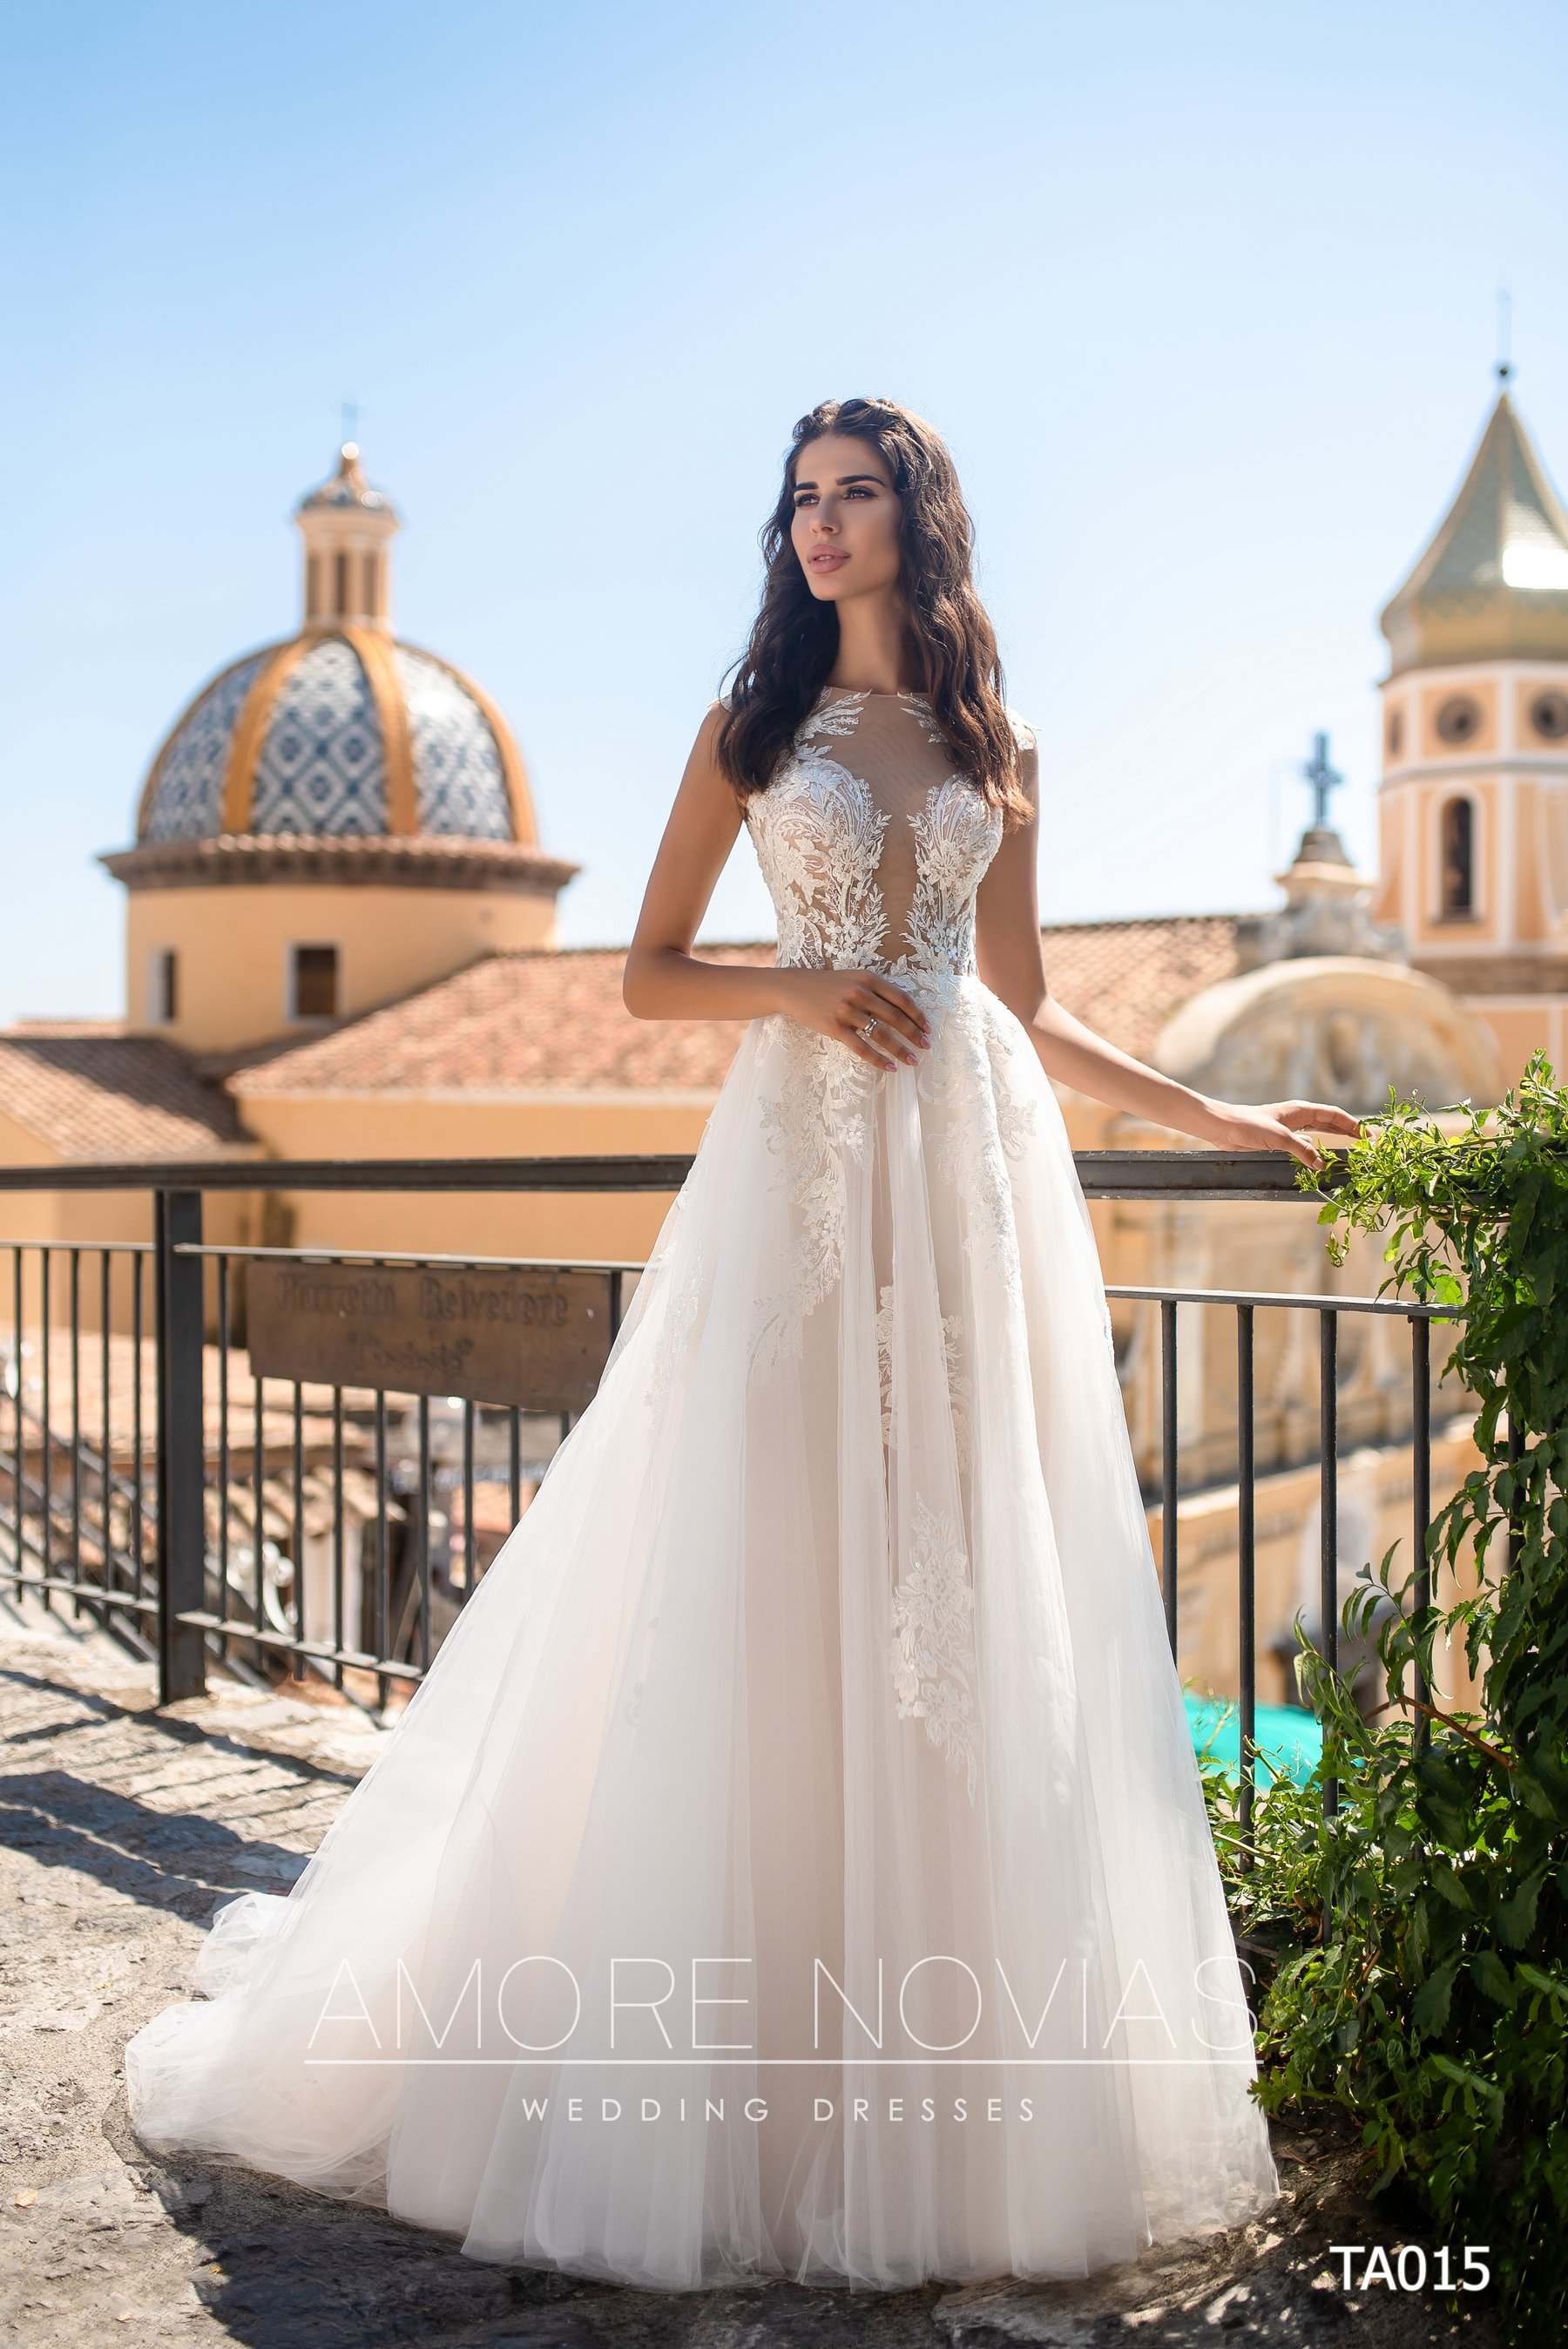 http://amore-novias.com/images/stories/virtuemart/product/TA015       (1).jpg